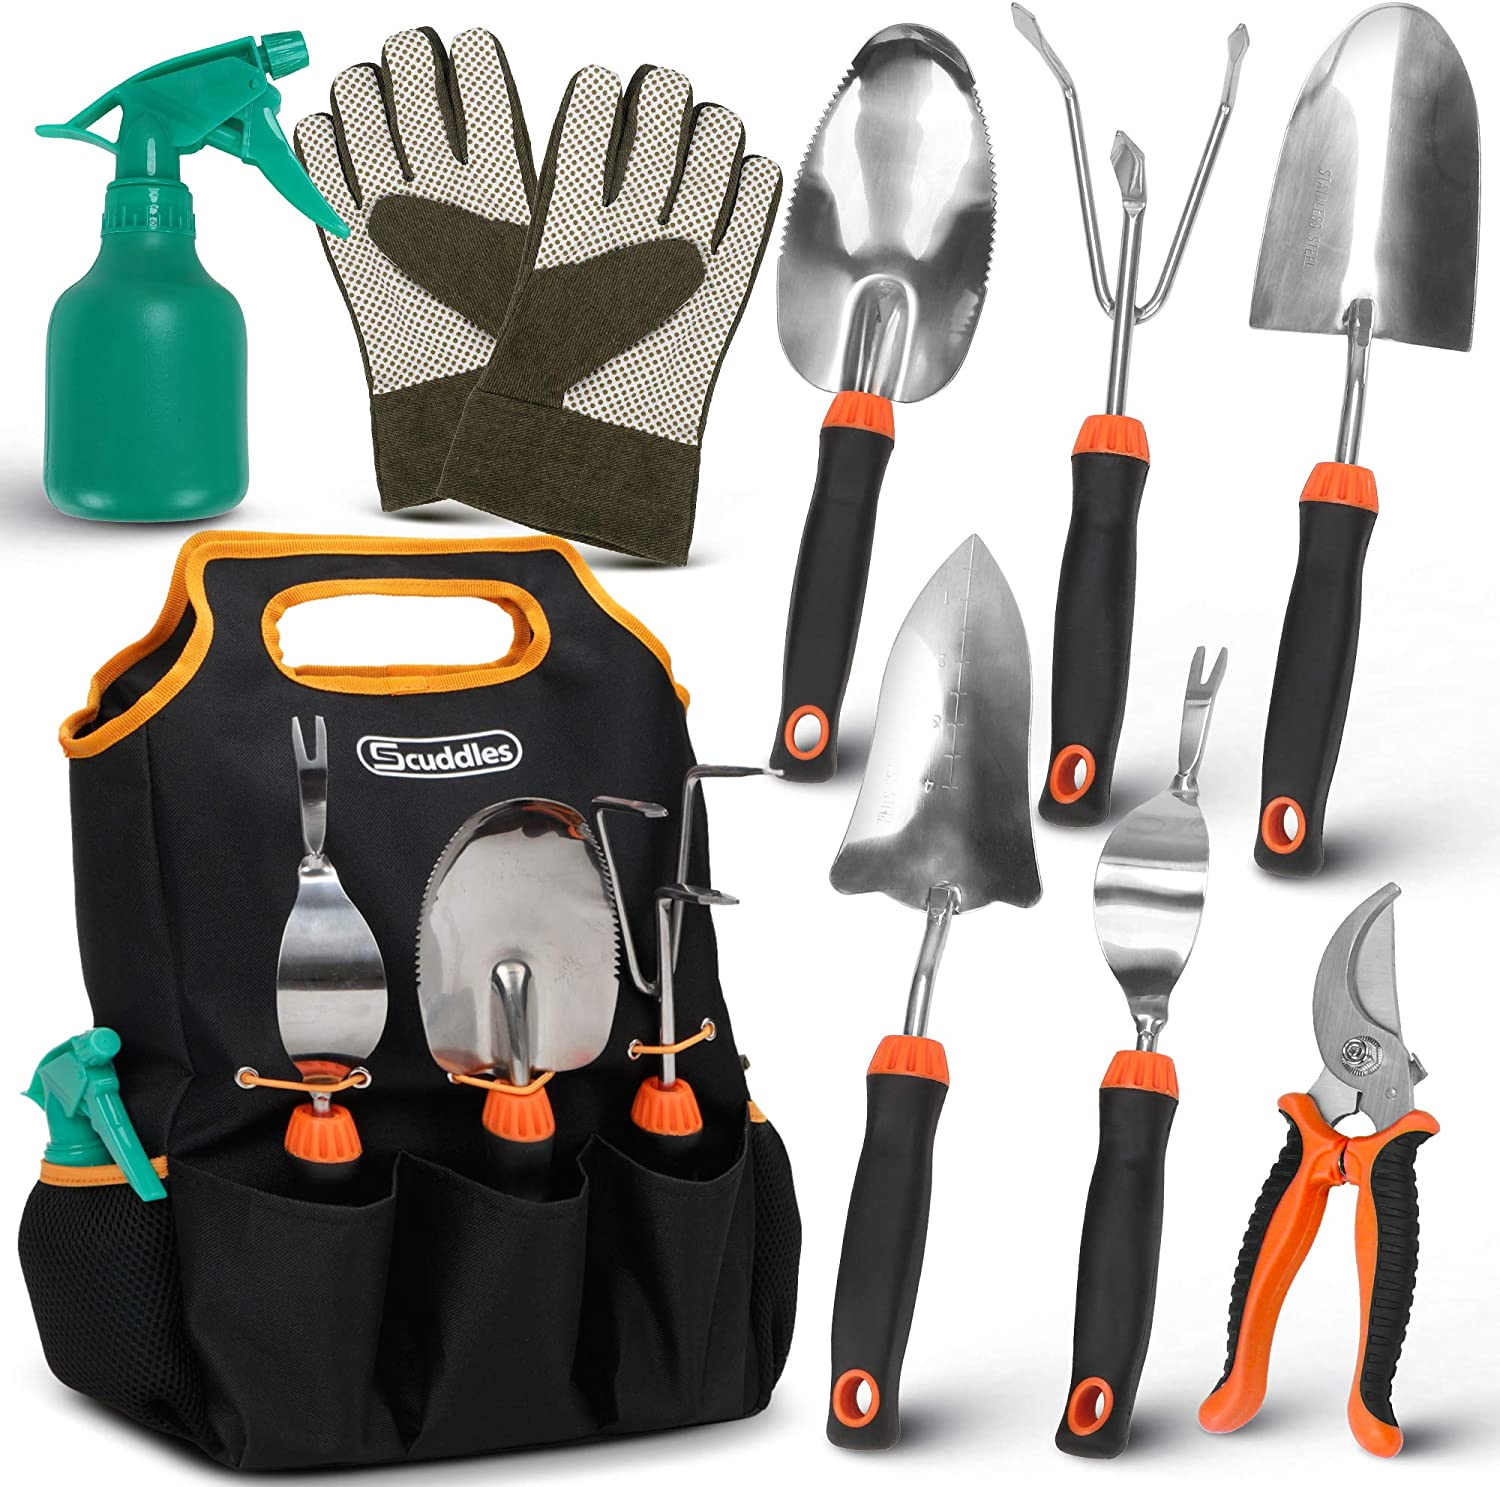 Scuddles 9 Piece Stainless Steel Heavy Duty Garden Tools Set, with Non-Slip Rubber Grip, Storage Tote Bag, Outdoor Hand Tools, Garden Gift, Black and Orange |